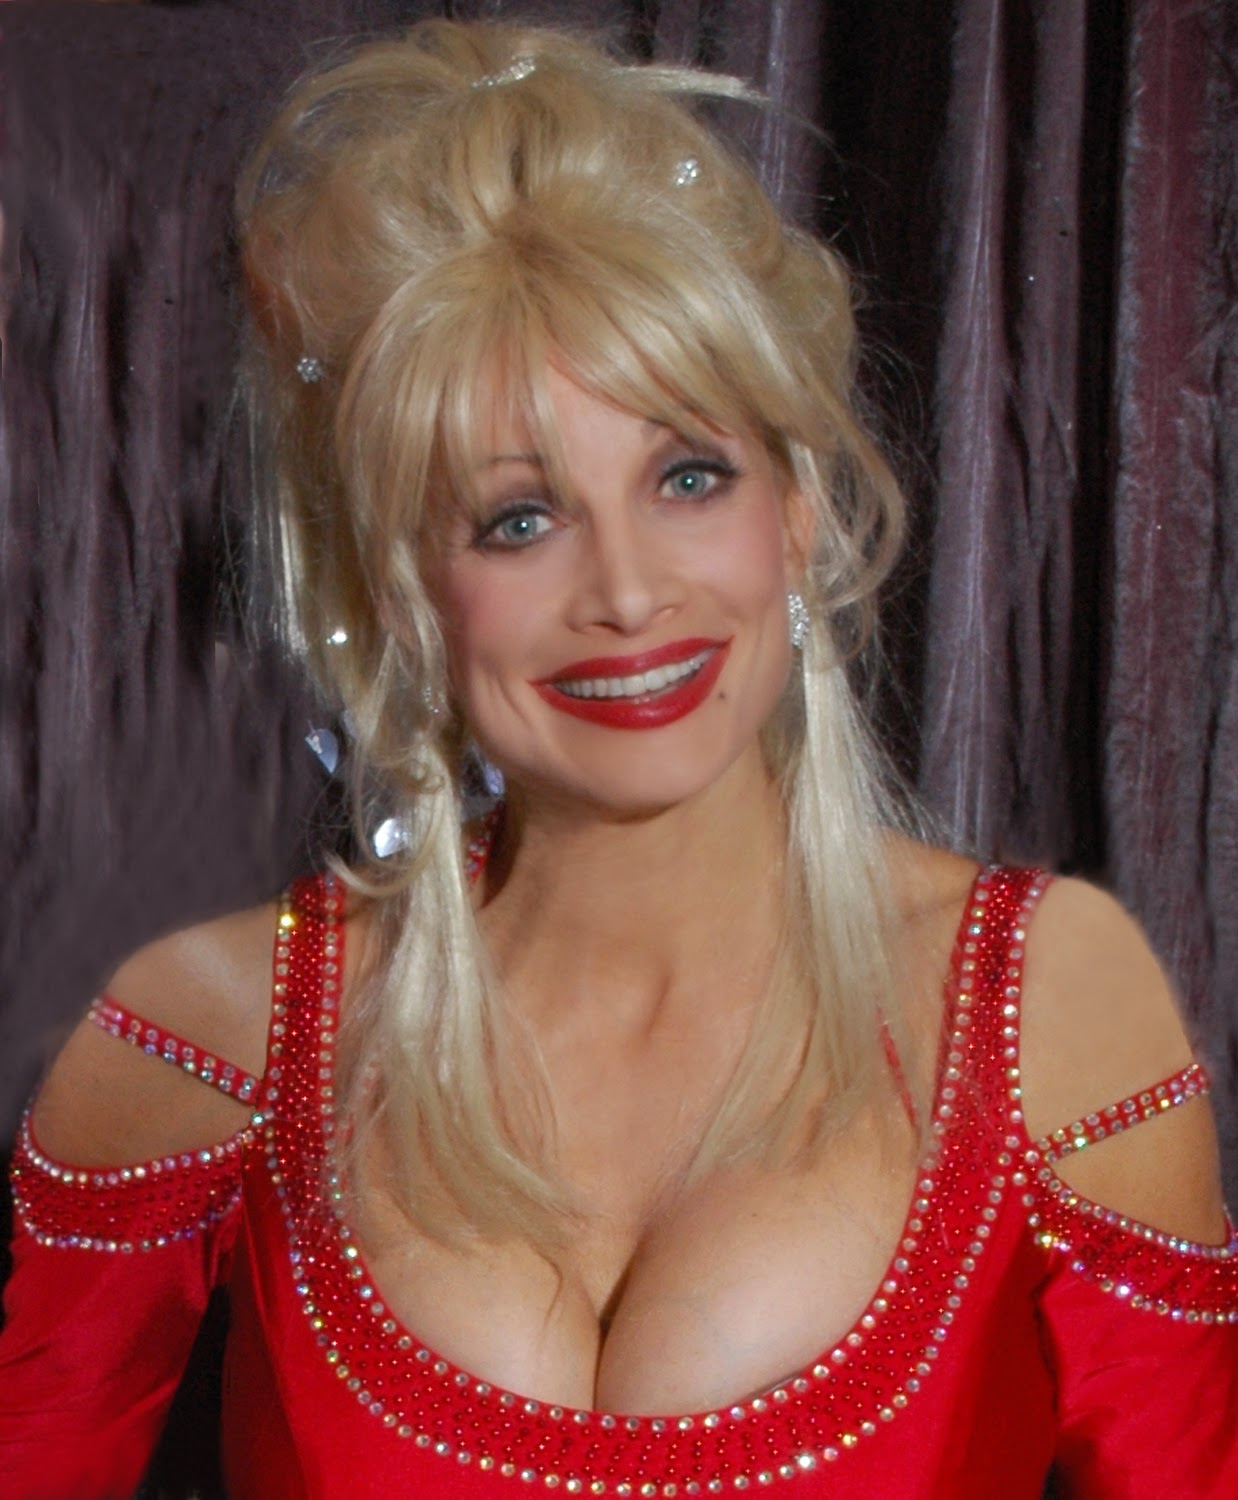 pictures Dolly partons breasts